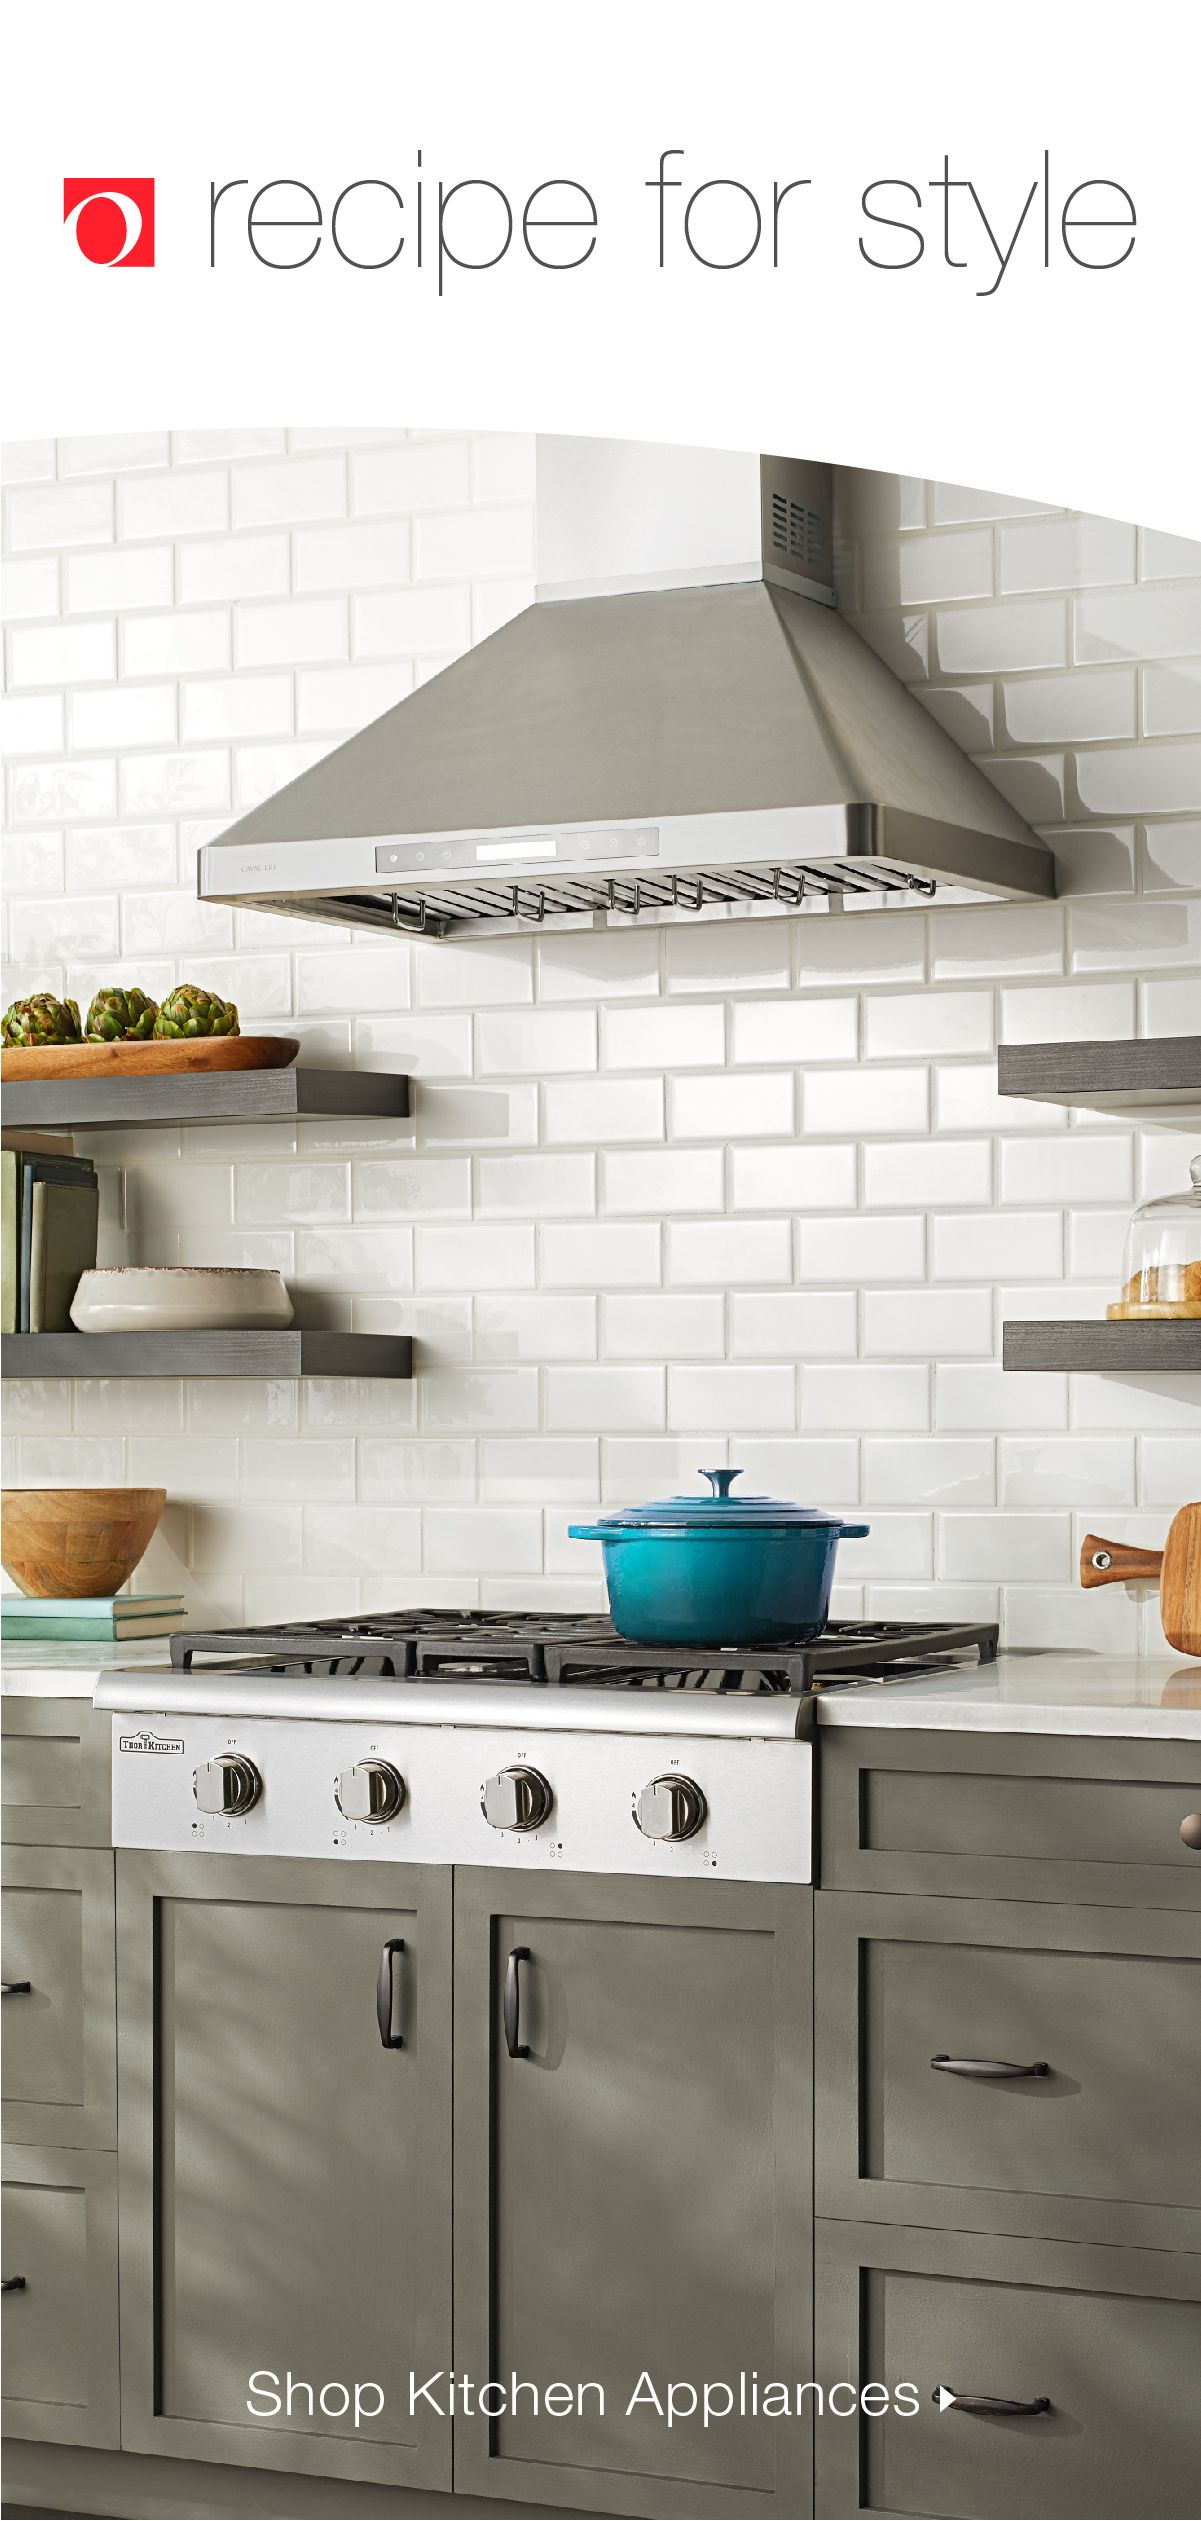 Cook your meals in style with new appliances from Overstock ...